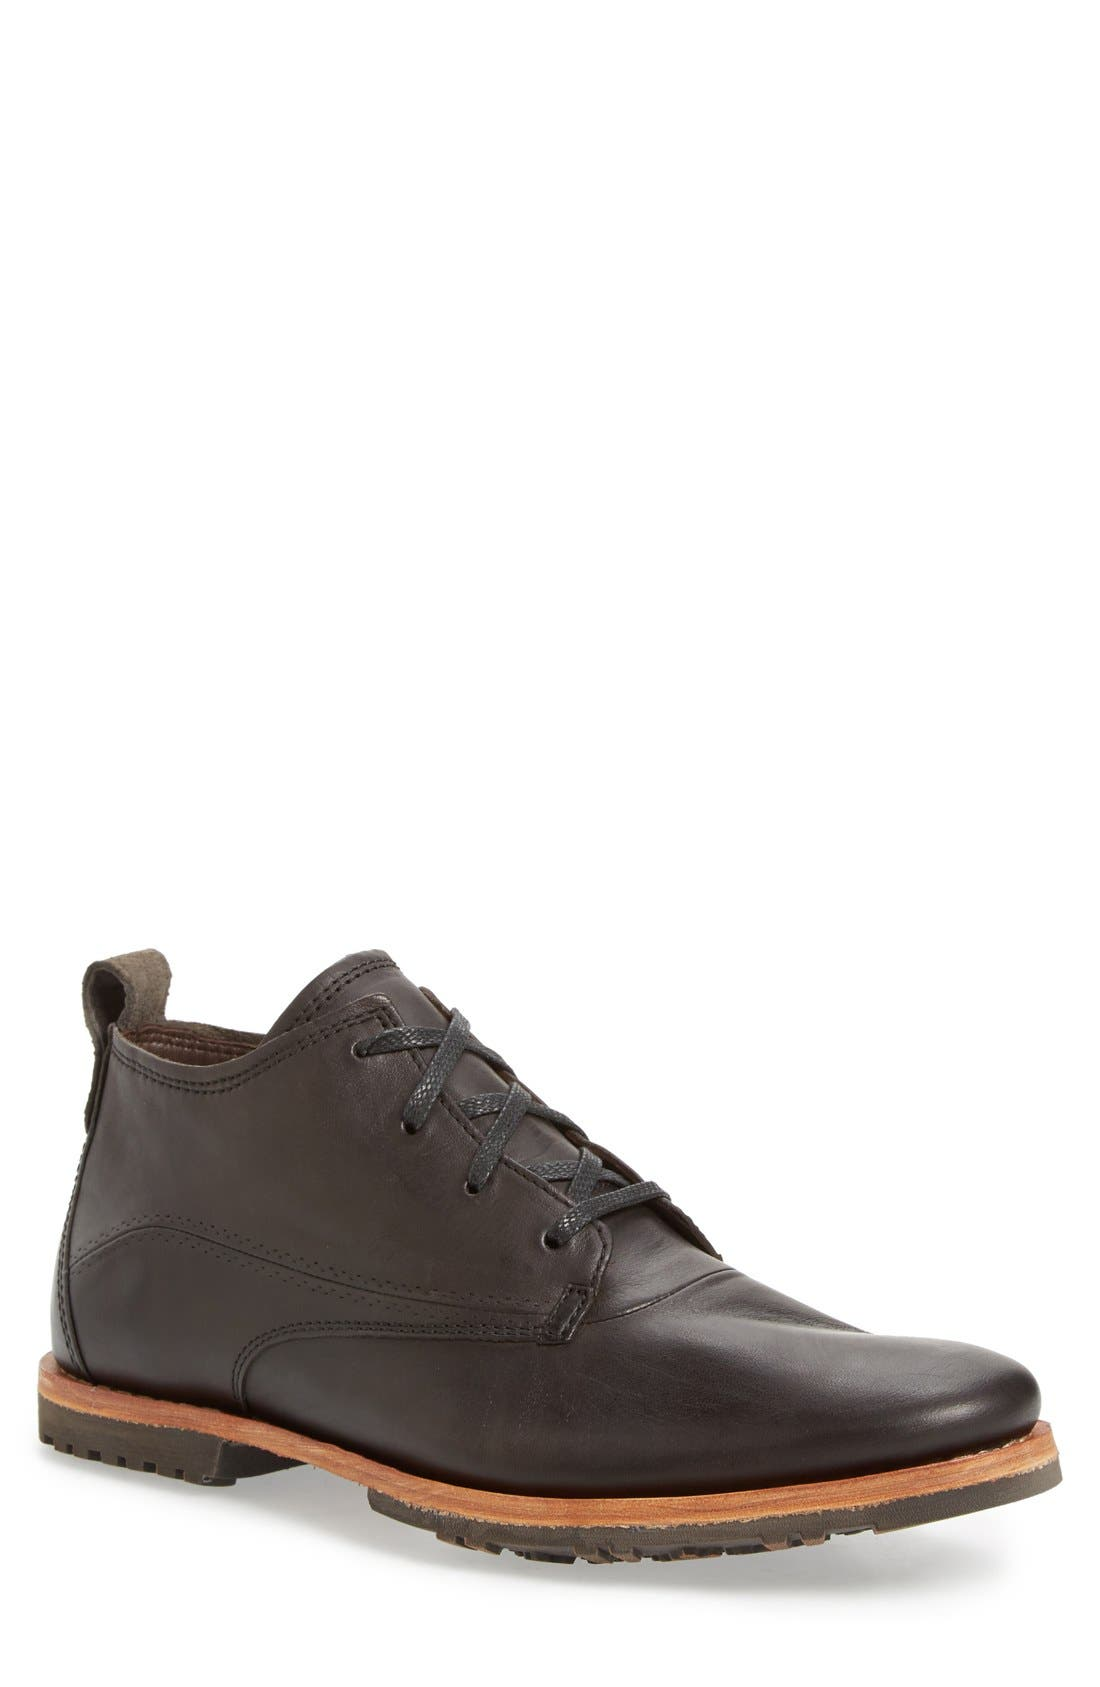 'Bardstown' Chukka Boot,                             Main thumbnail 3, color,